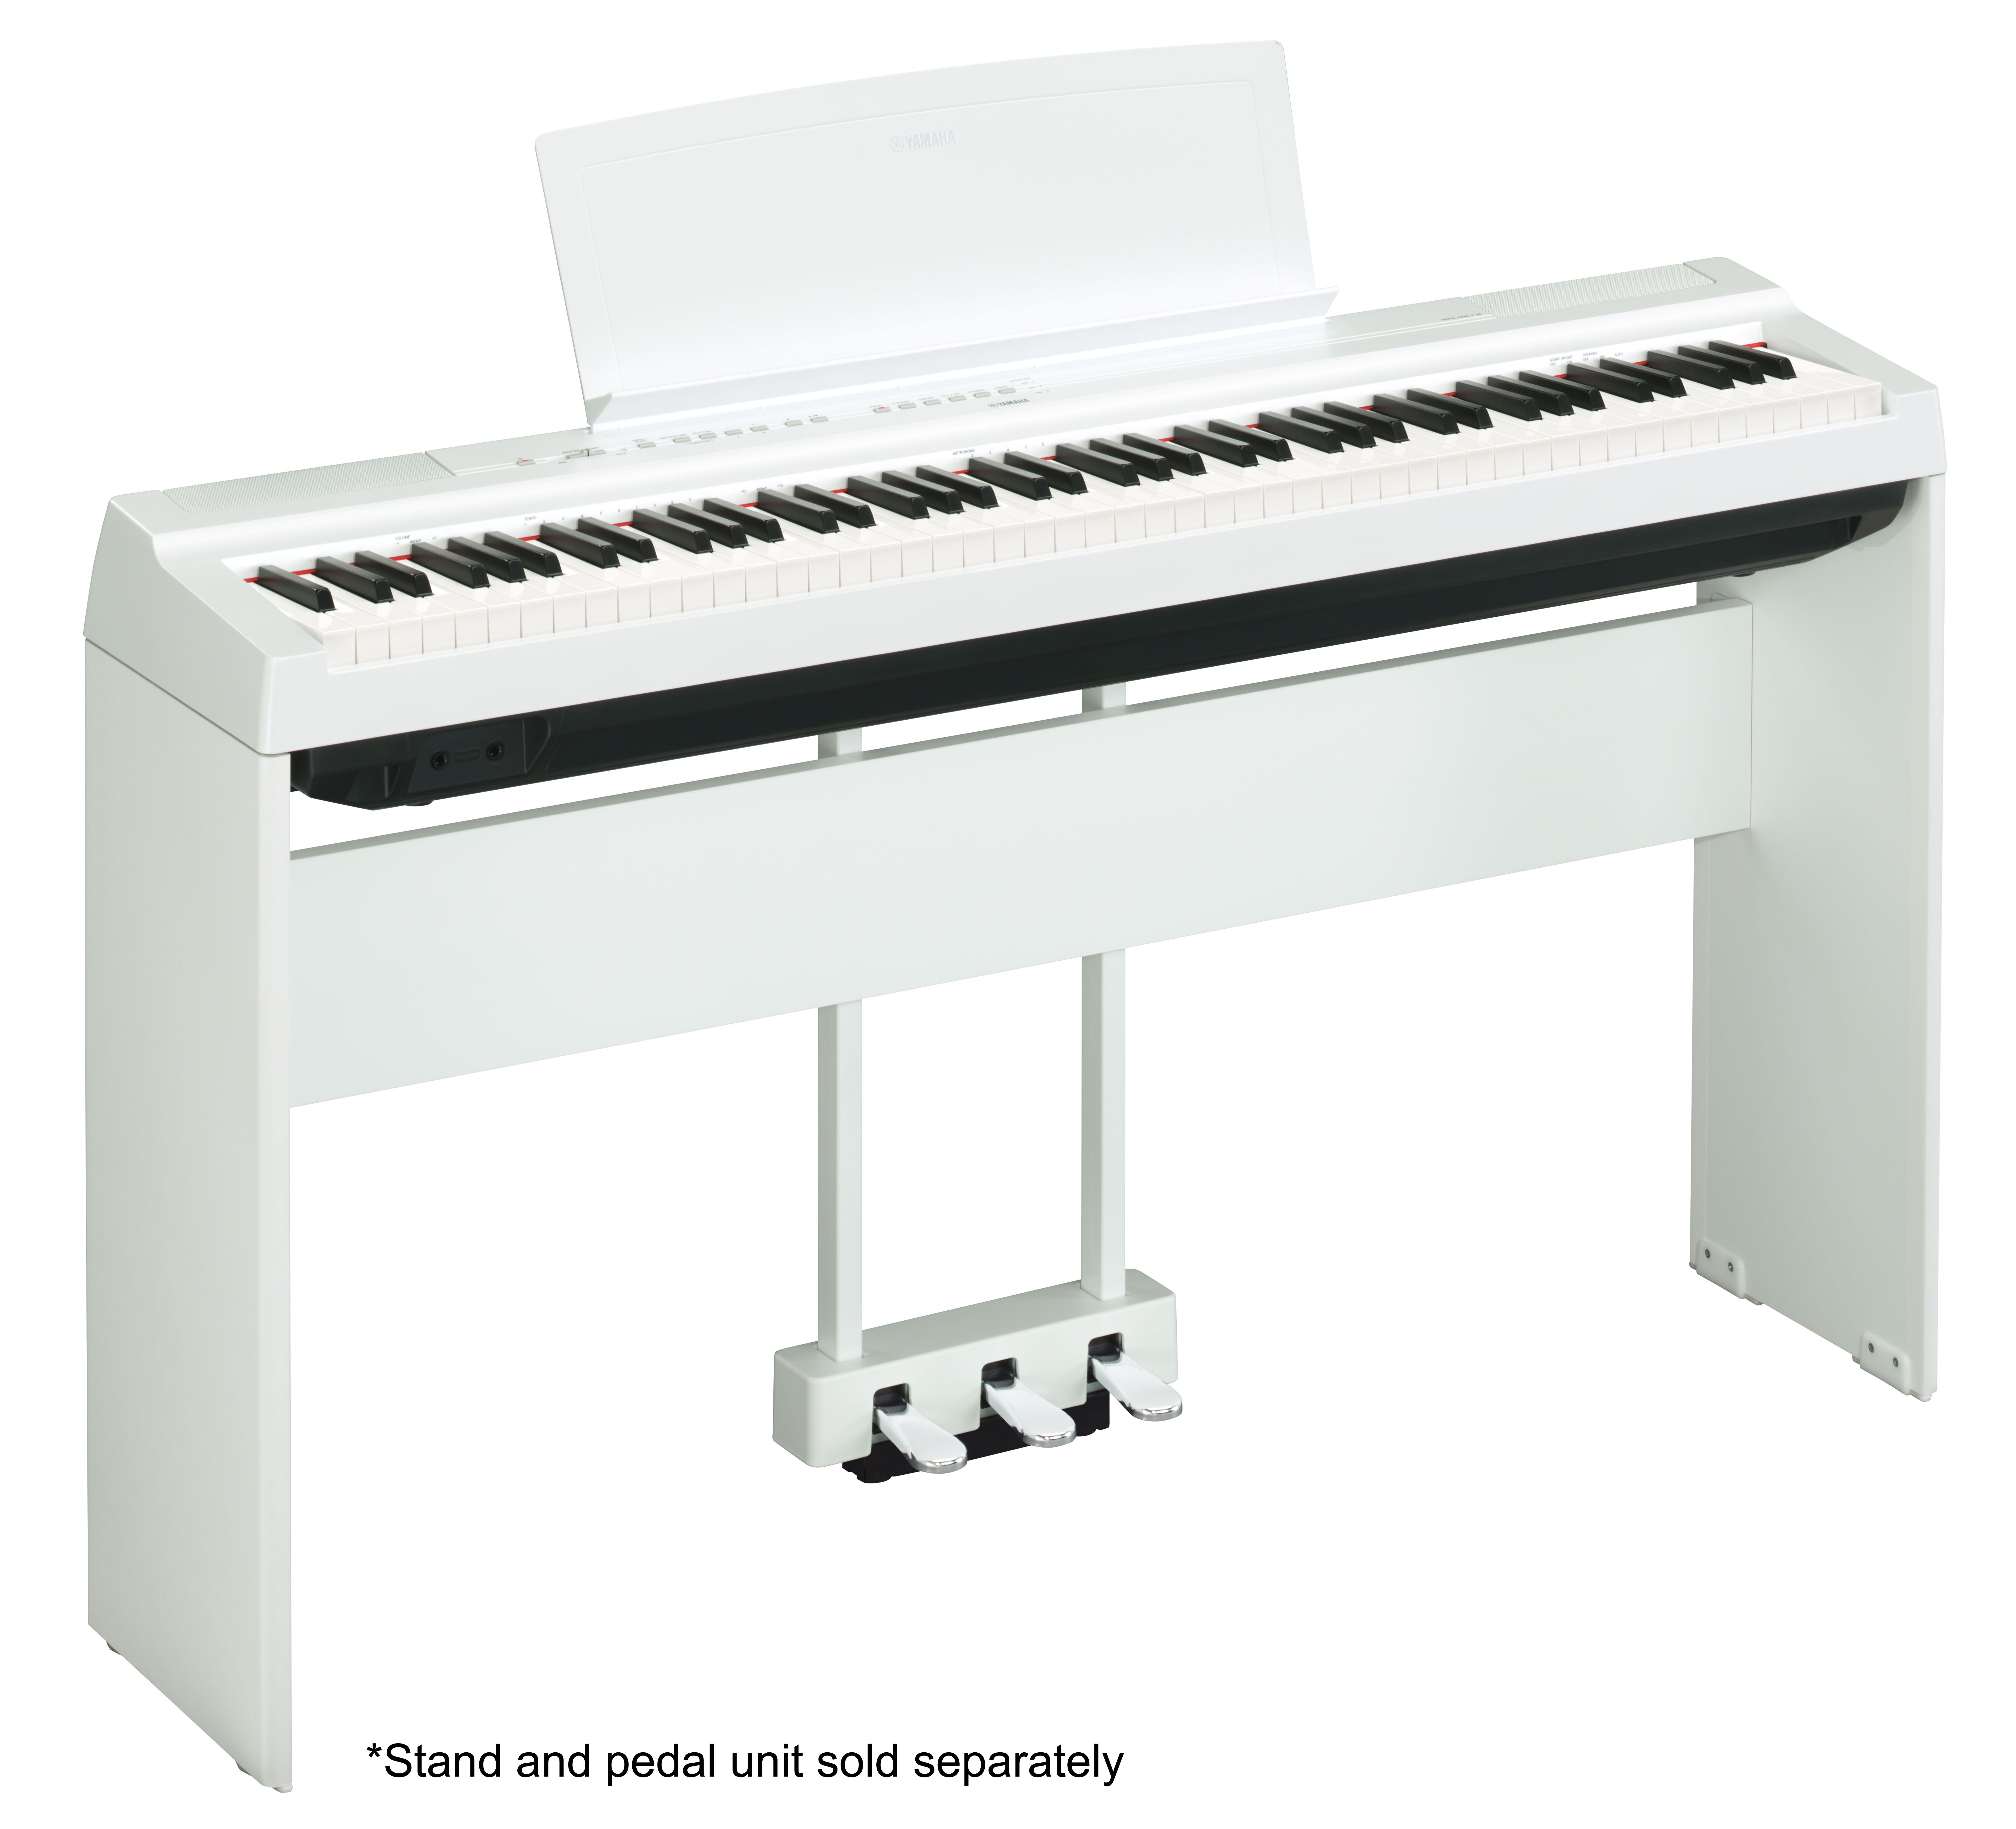 P-125 - Overview - P-Series - Pianos - Musical Instruments ... on shaker home design, triangle home design, storm proof home design, classical home design, 80s home design,